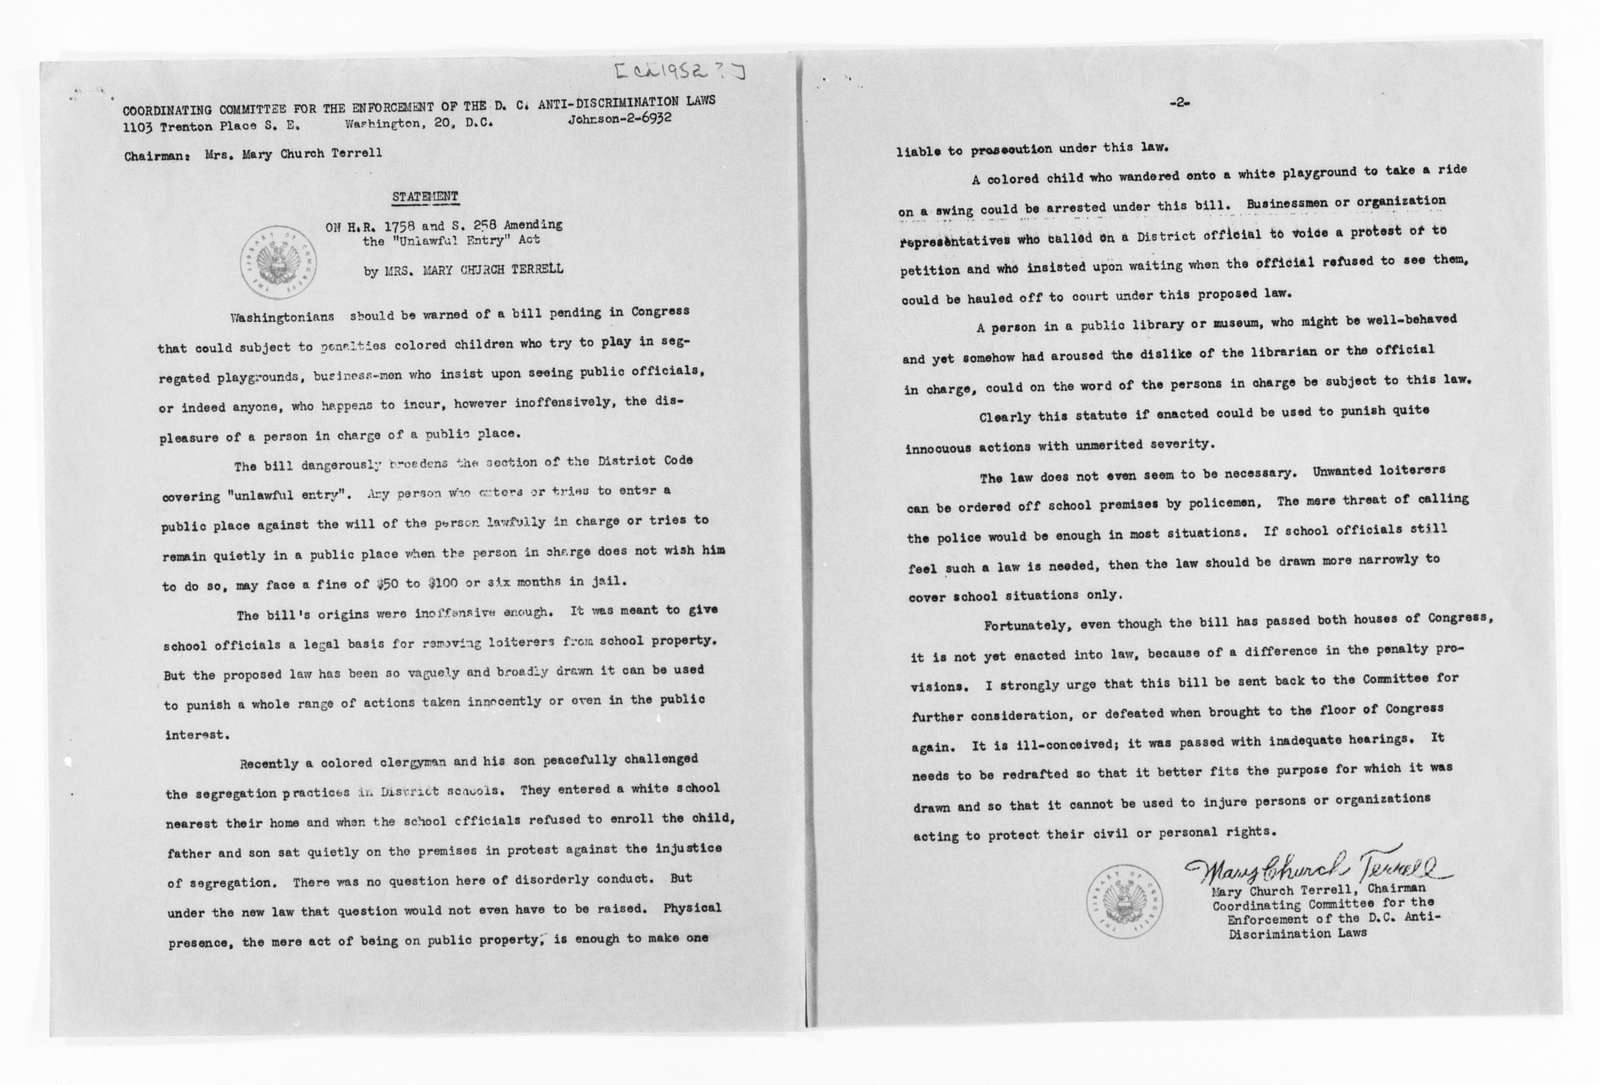 Mary Church Terrell Papers: Subject File, 1884-1962; Coordinating Committee for the Enforcement of the D.C. Anti-Discrimination Laws, Washington, D.C., 1949-1954; Miscellaneous, 1949-1954